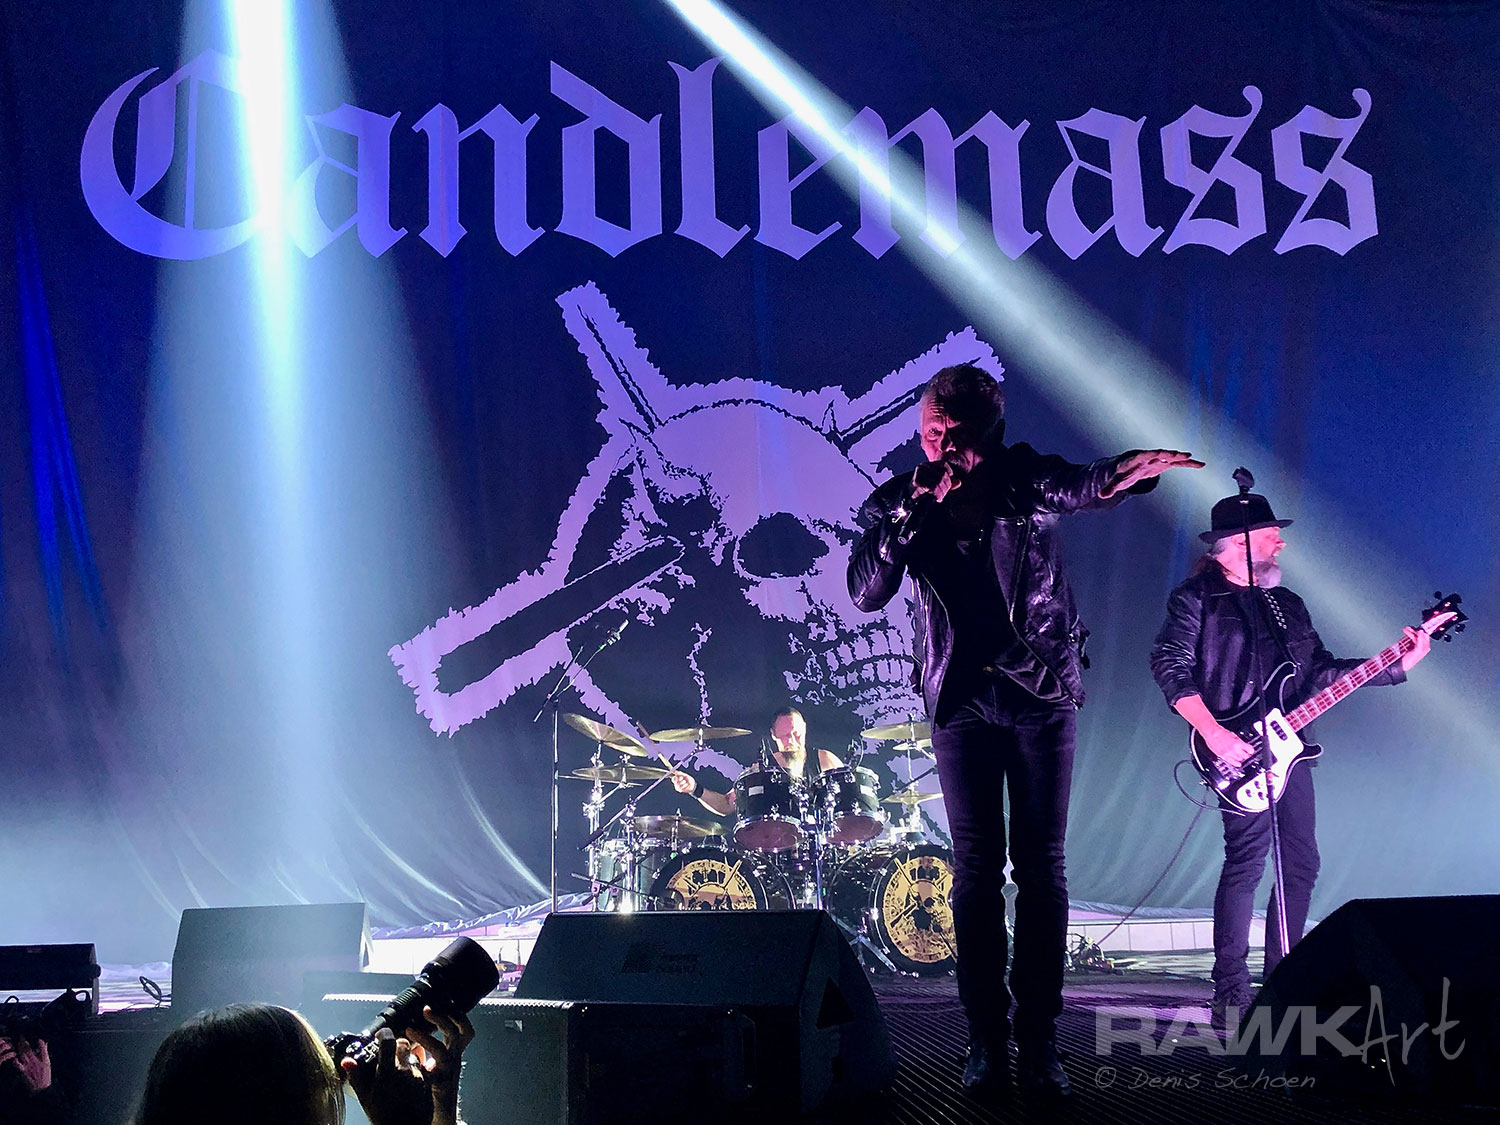 Candlemass at RuhrCongress, Bochum, Germany 2019